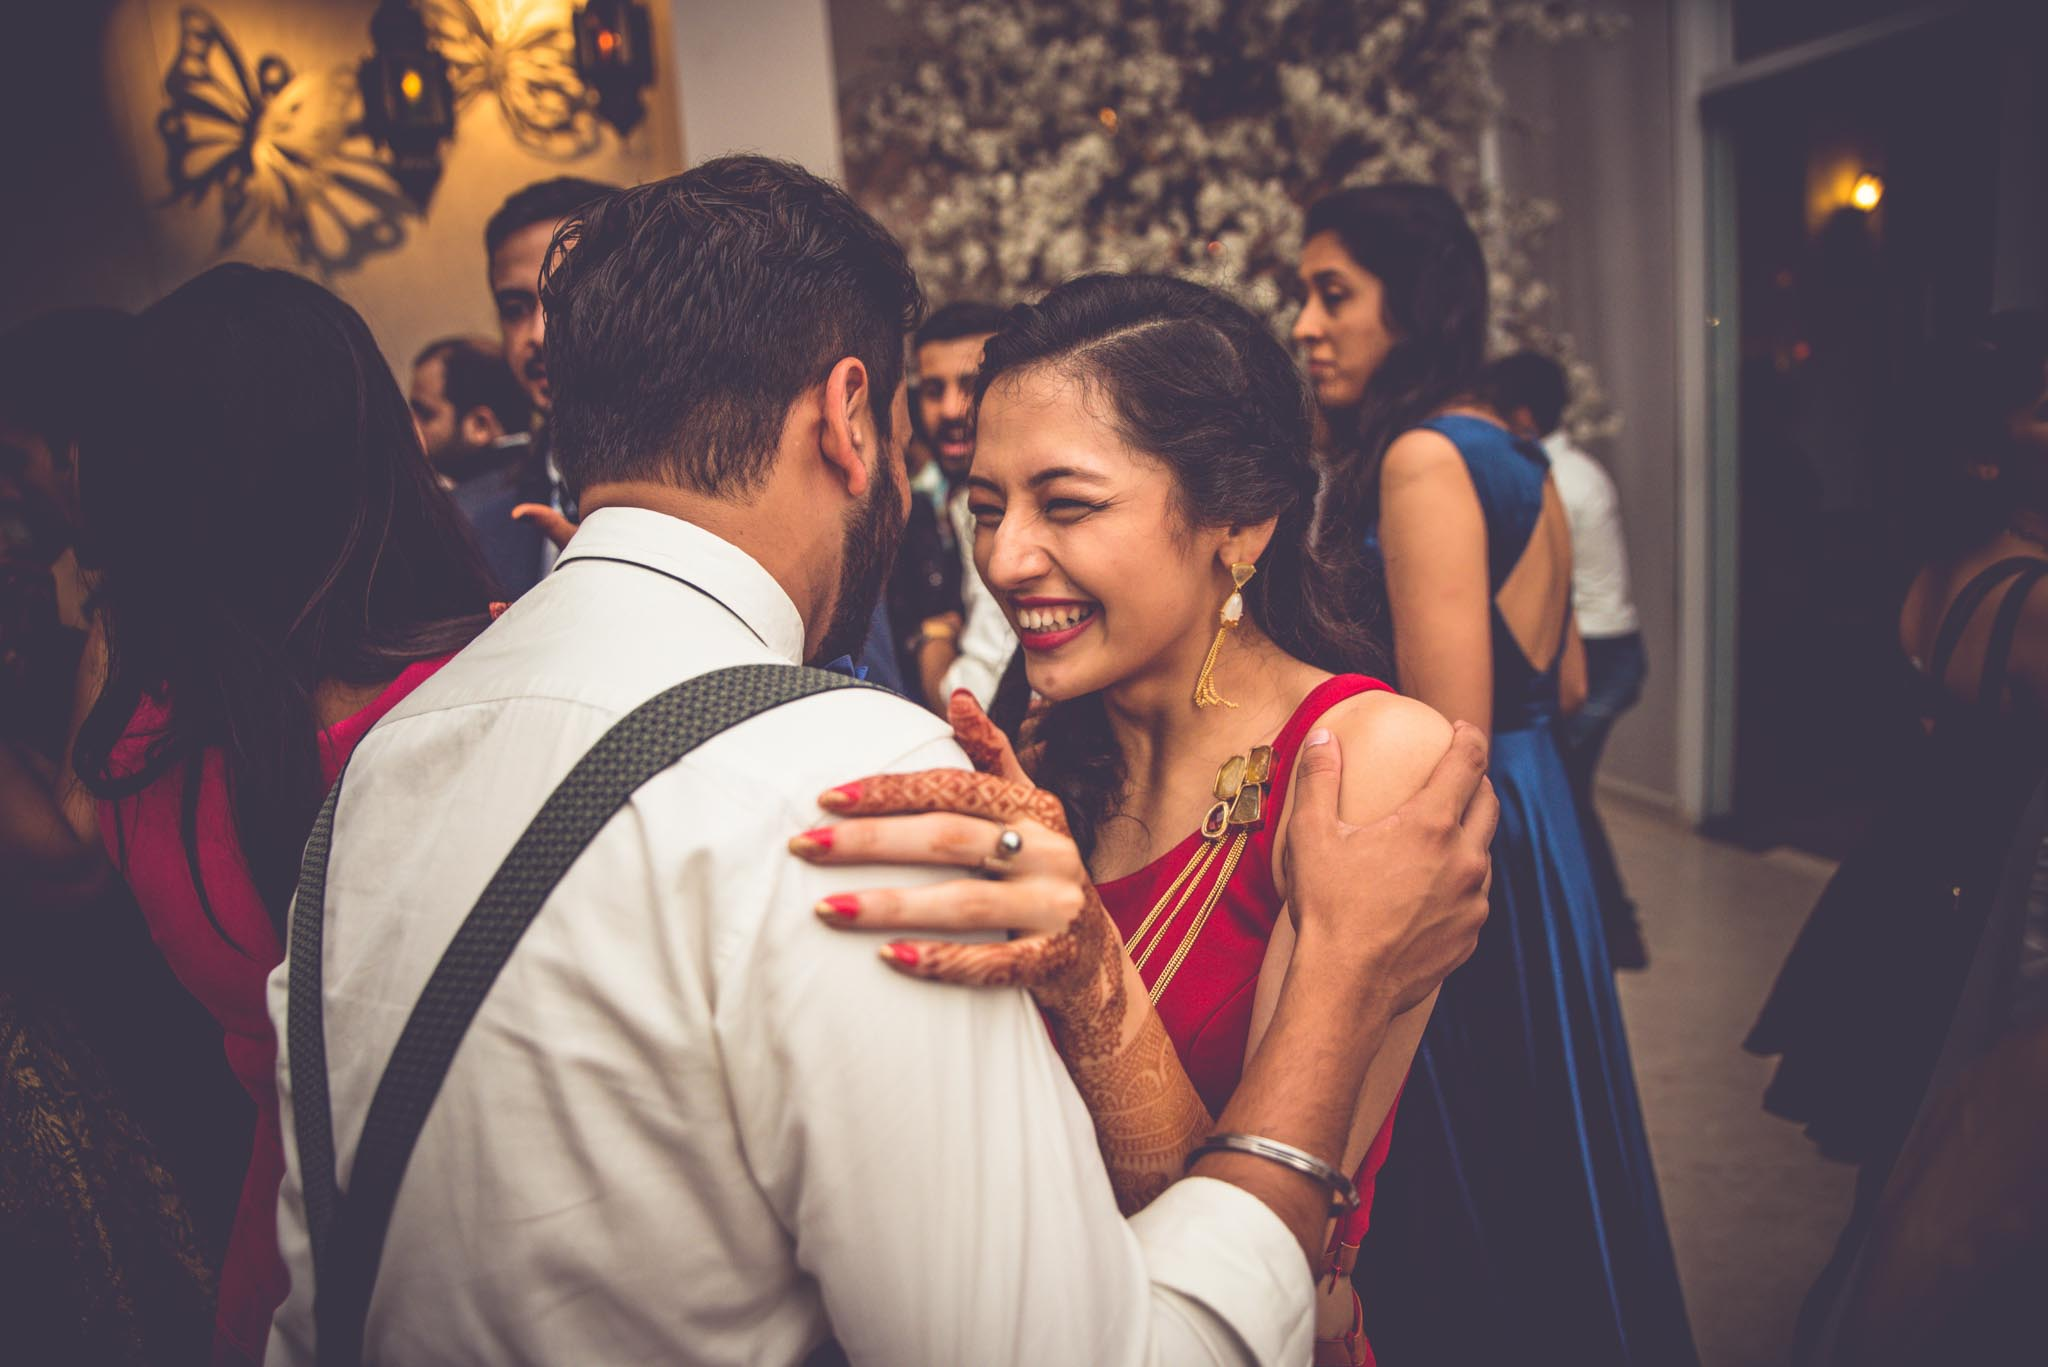 StRegis-Palladium-Mumbai-Candid-Wedding-Photography-12